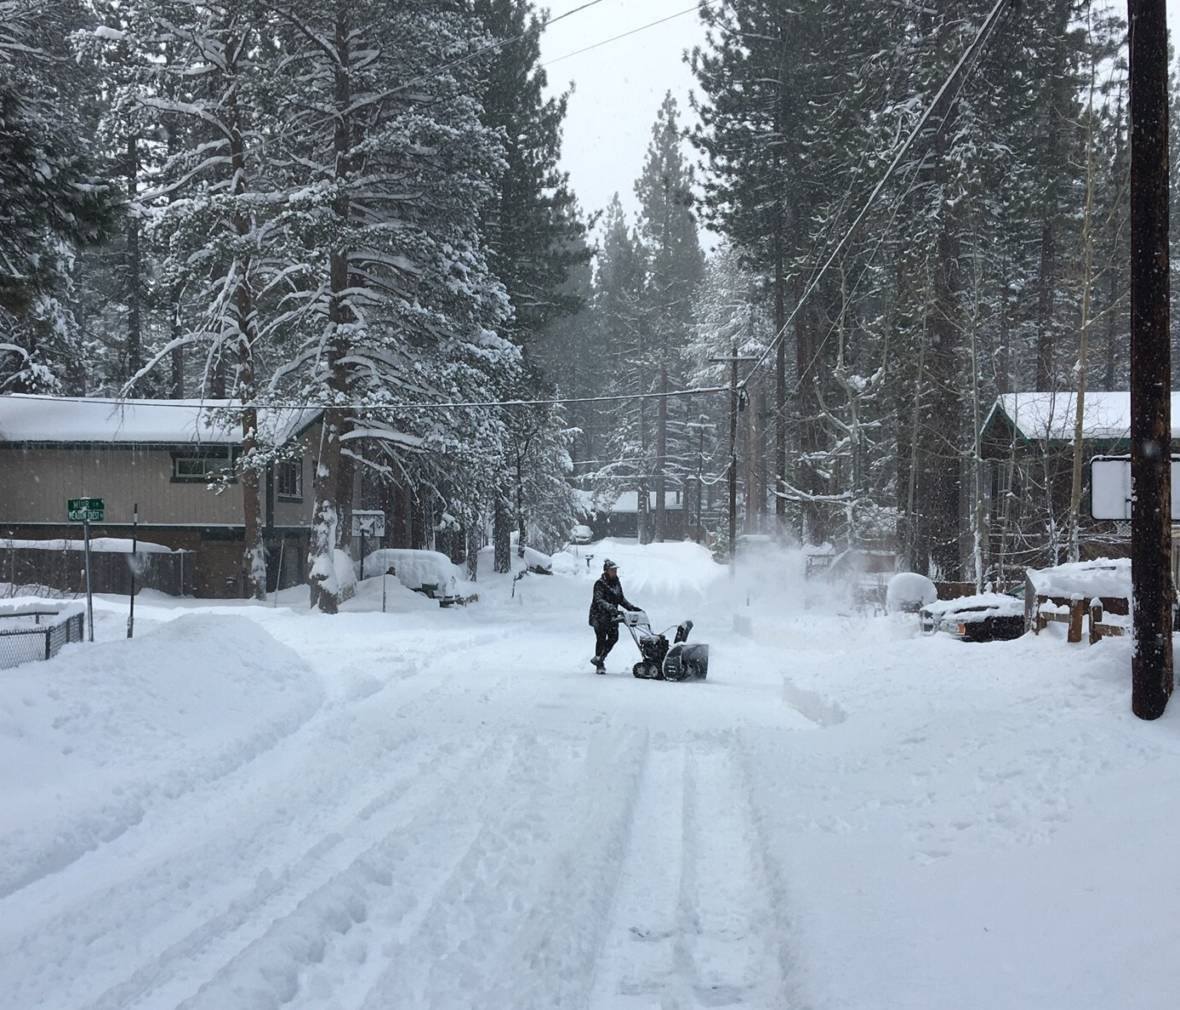 Blizzard Conditions in the Sierra Nevada Leave One Dead, Two Injured